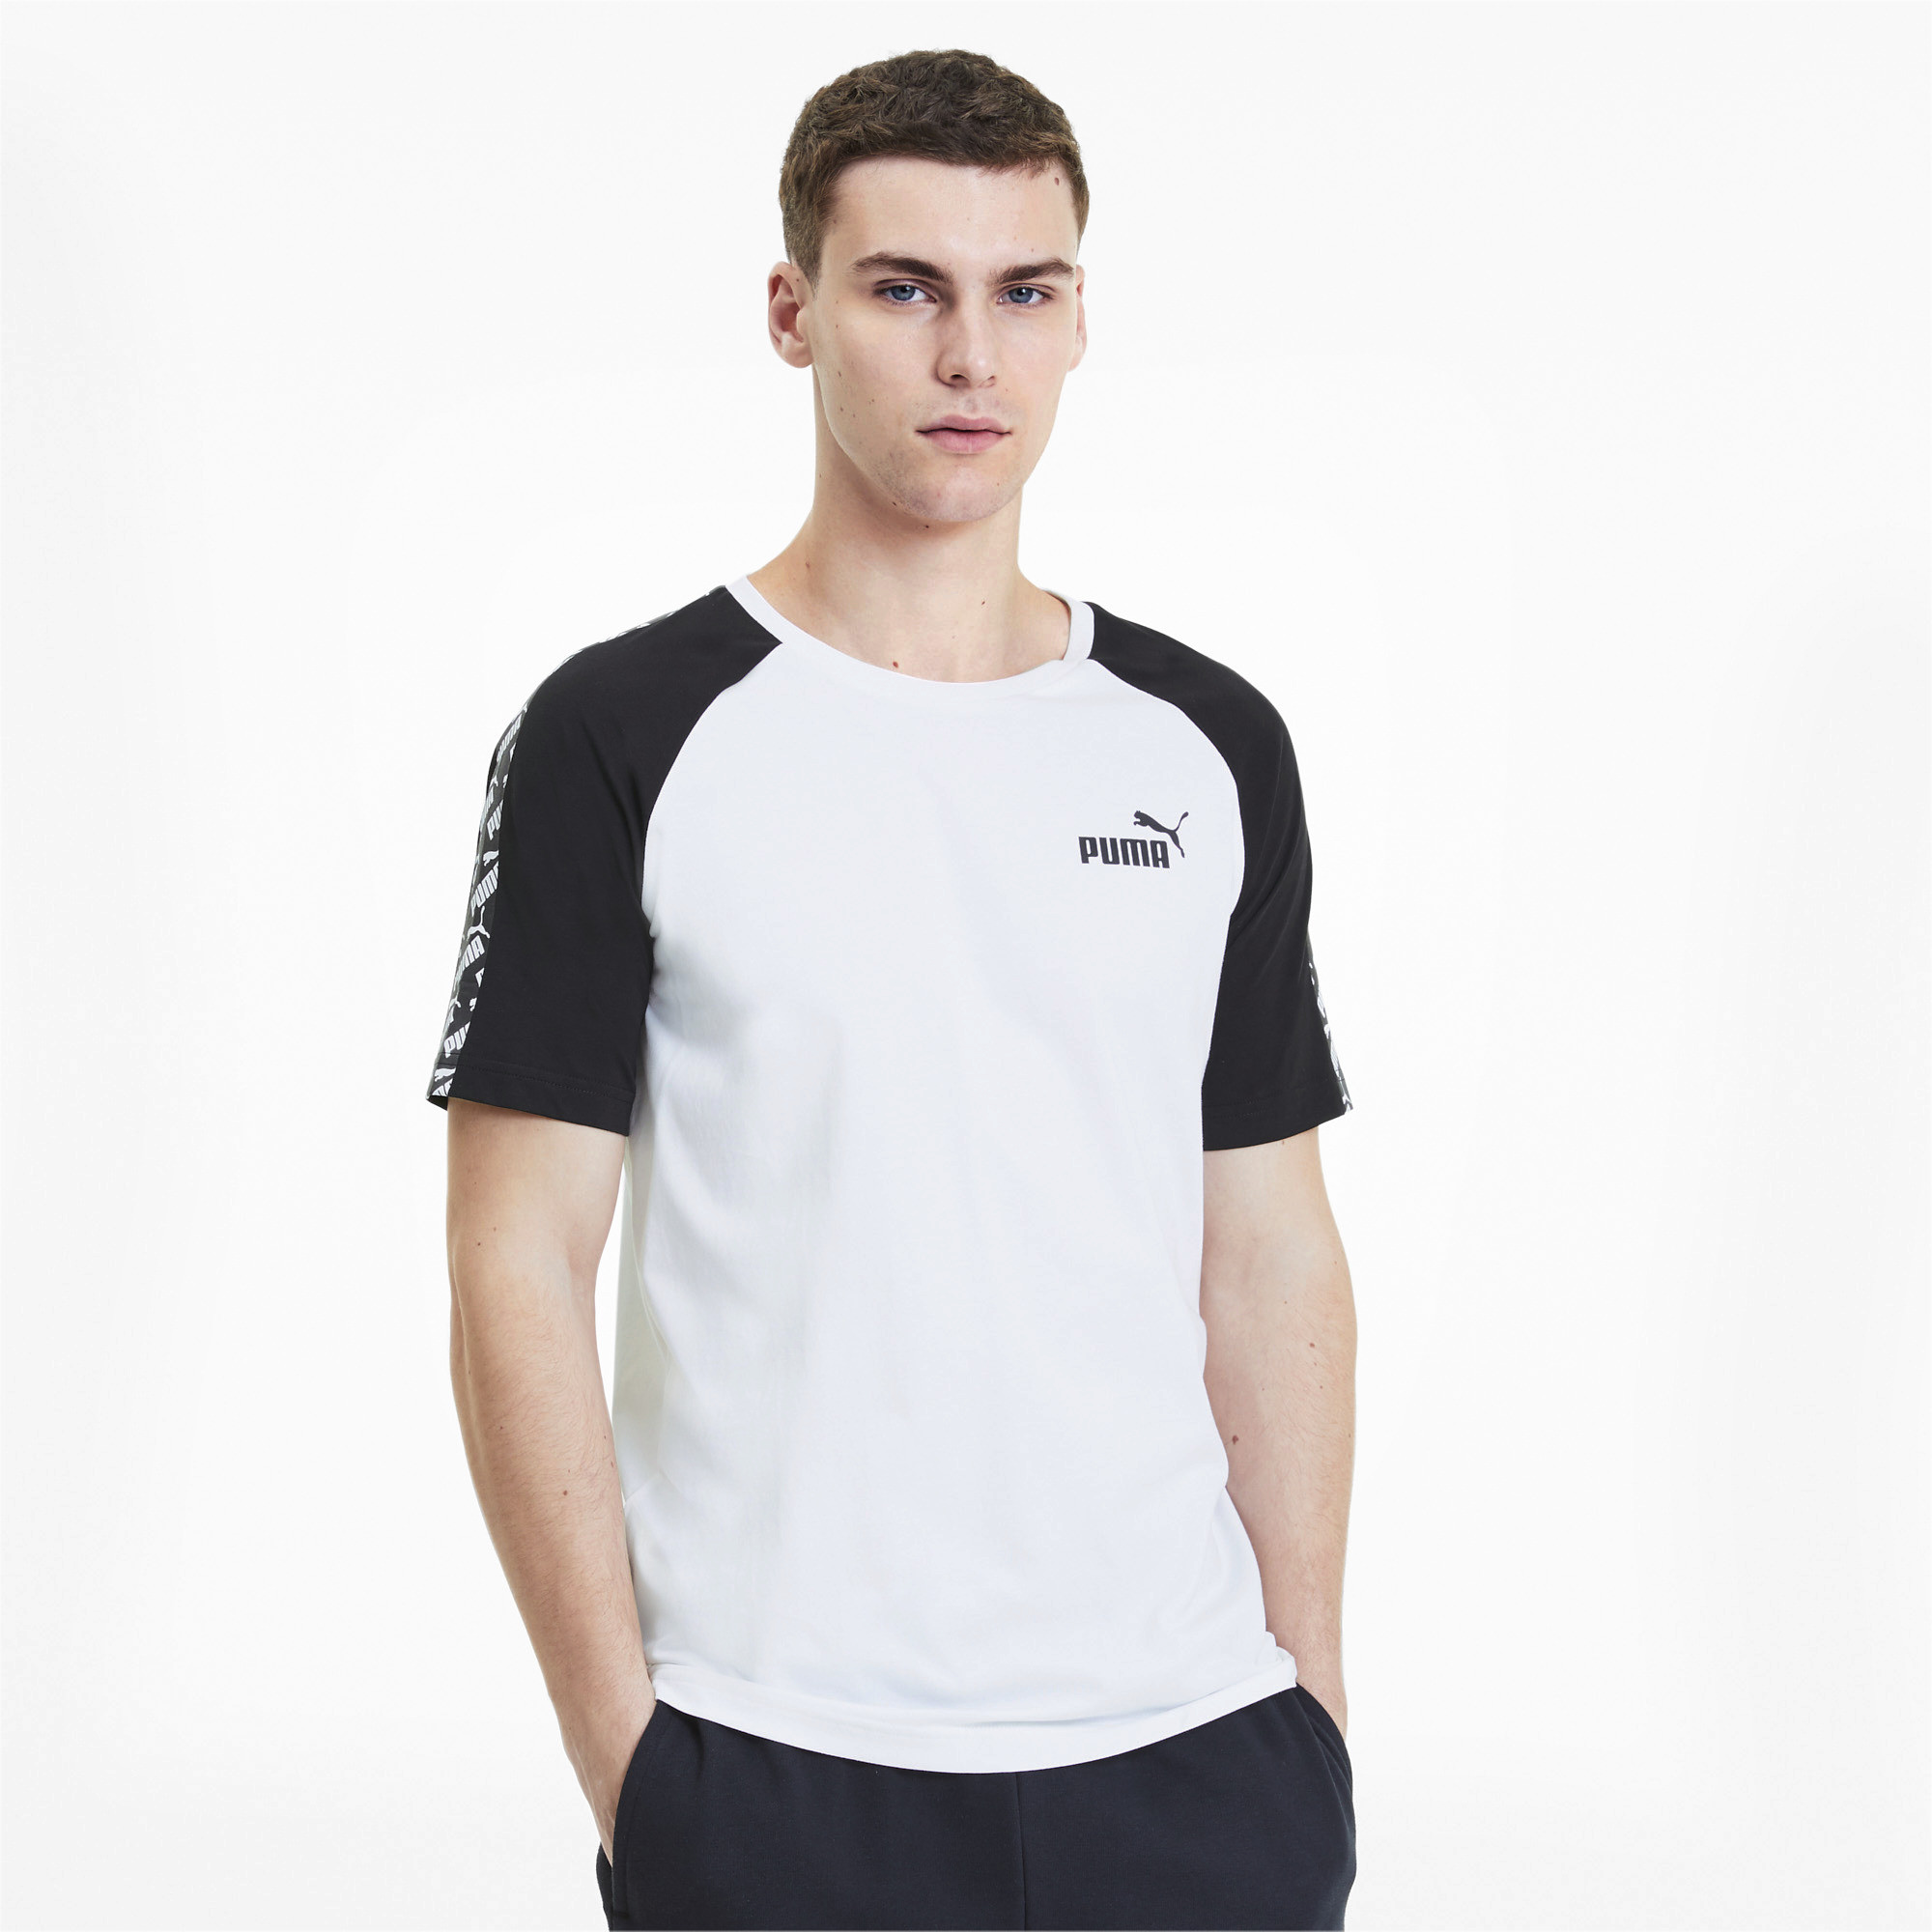 PUMA-Amplified-Men-039-s-Raglan-Tee-Men-Tee-Basics thumbnail 4